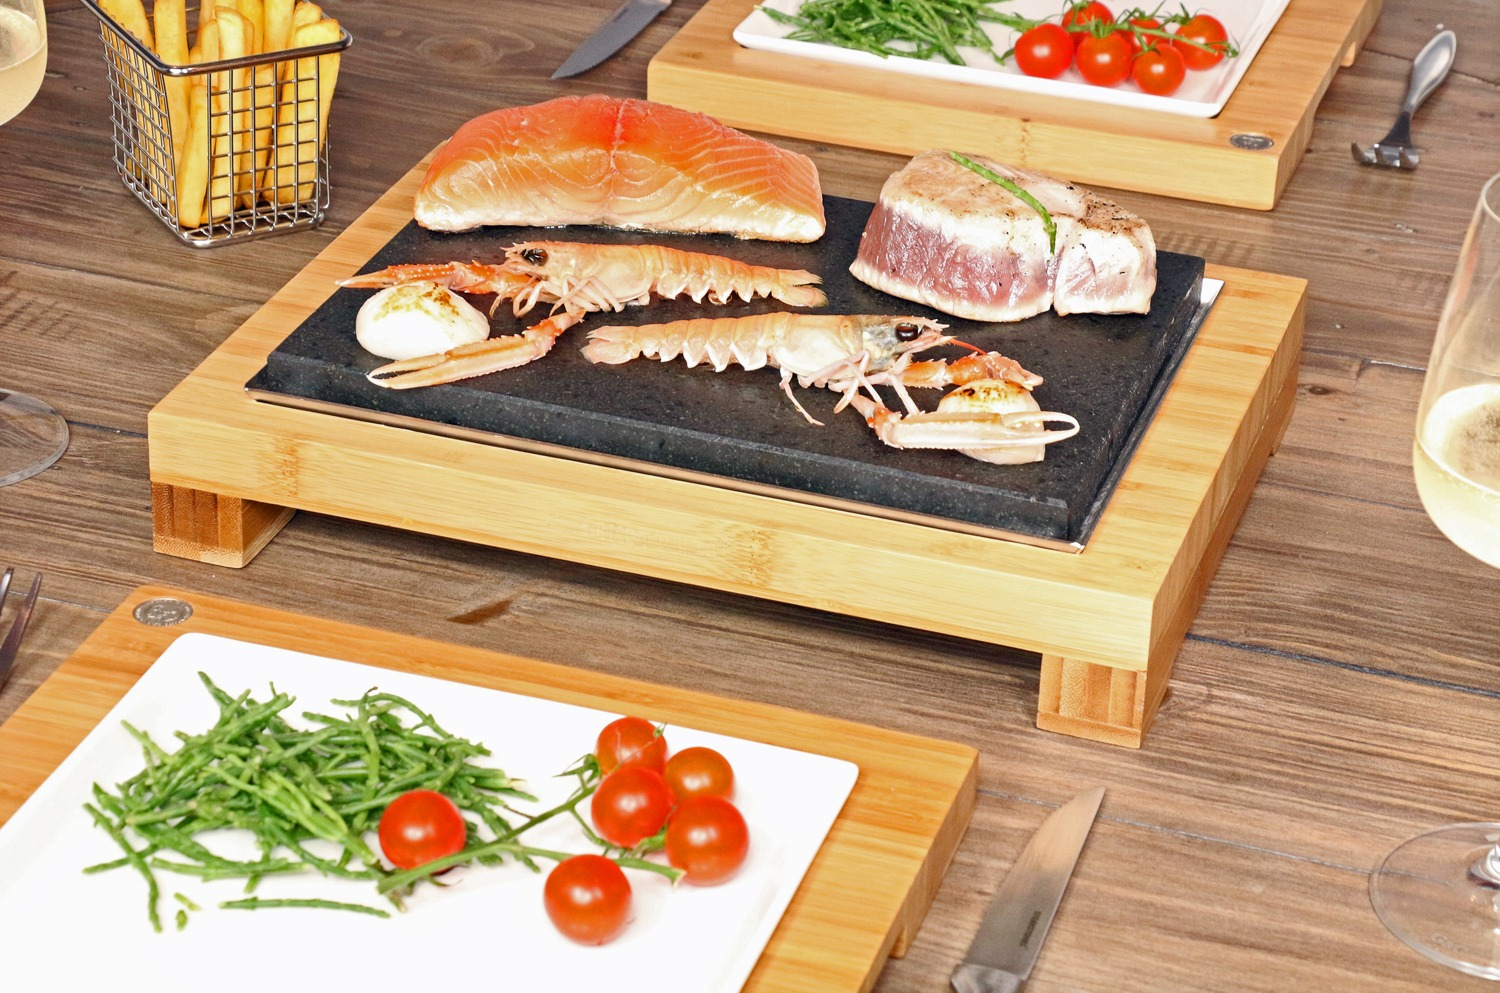 The Raised Steak Sharer with Sizzling Salmon & Fillet Steaks from SteakStones